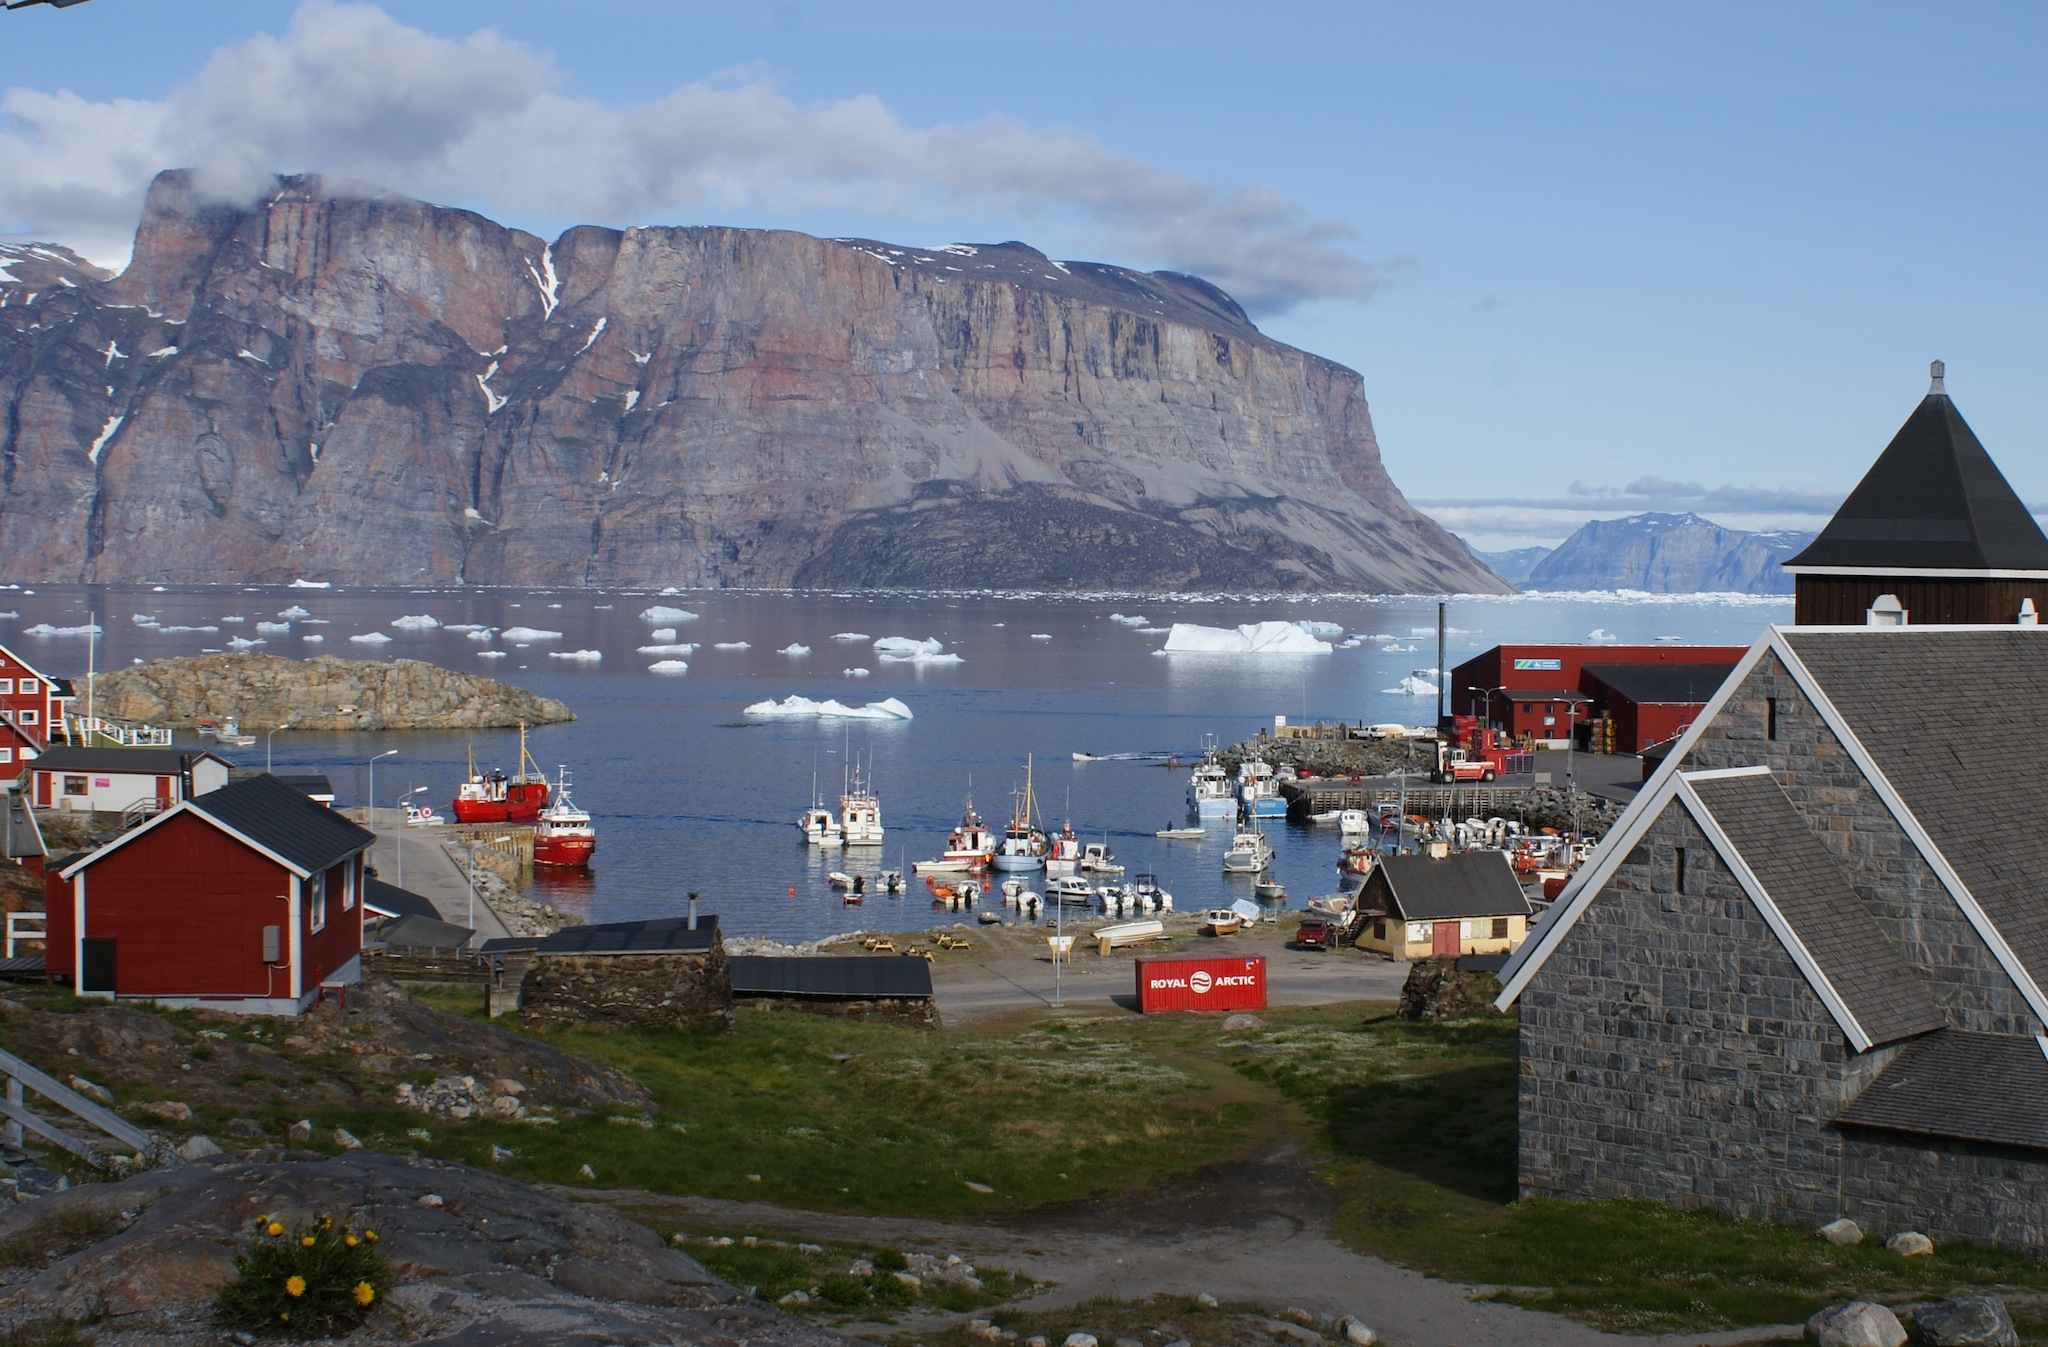 Uummannaq, Greenland, places for nighttime sun travel feature